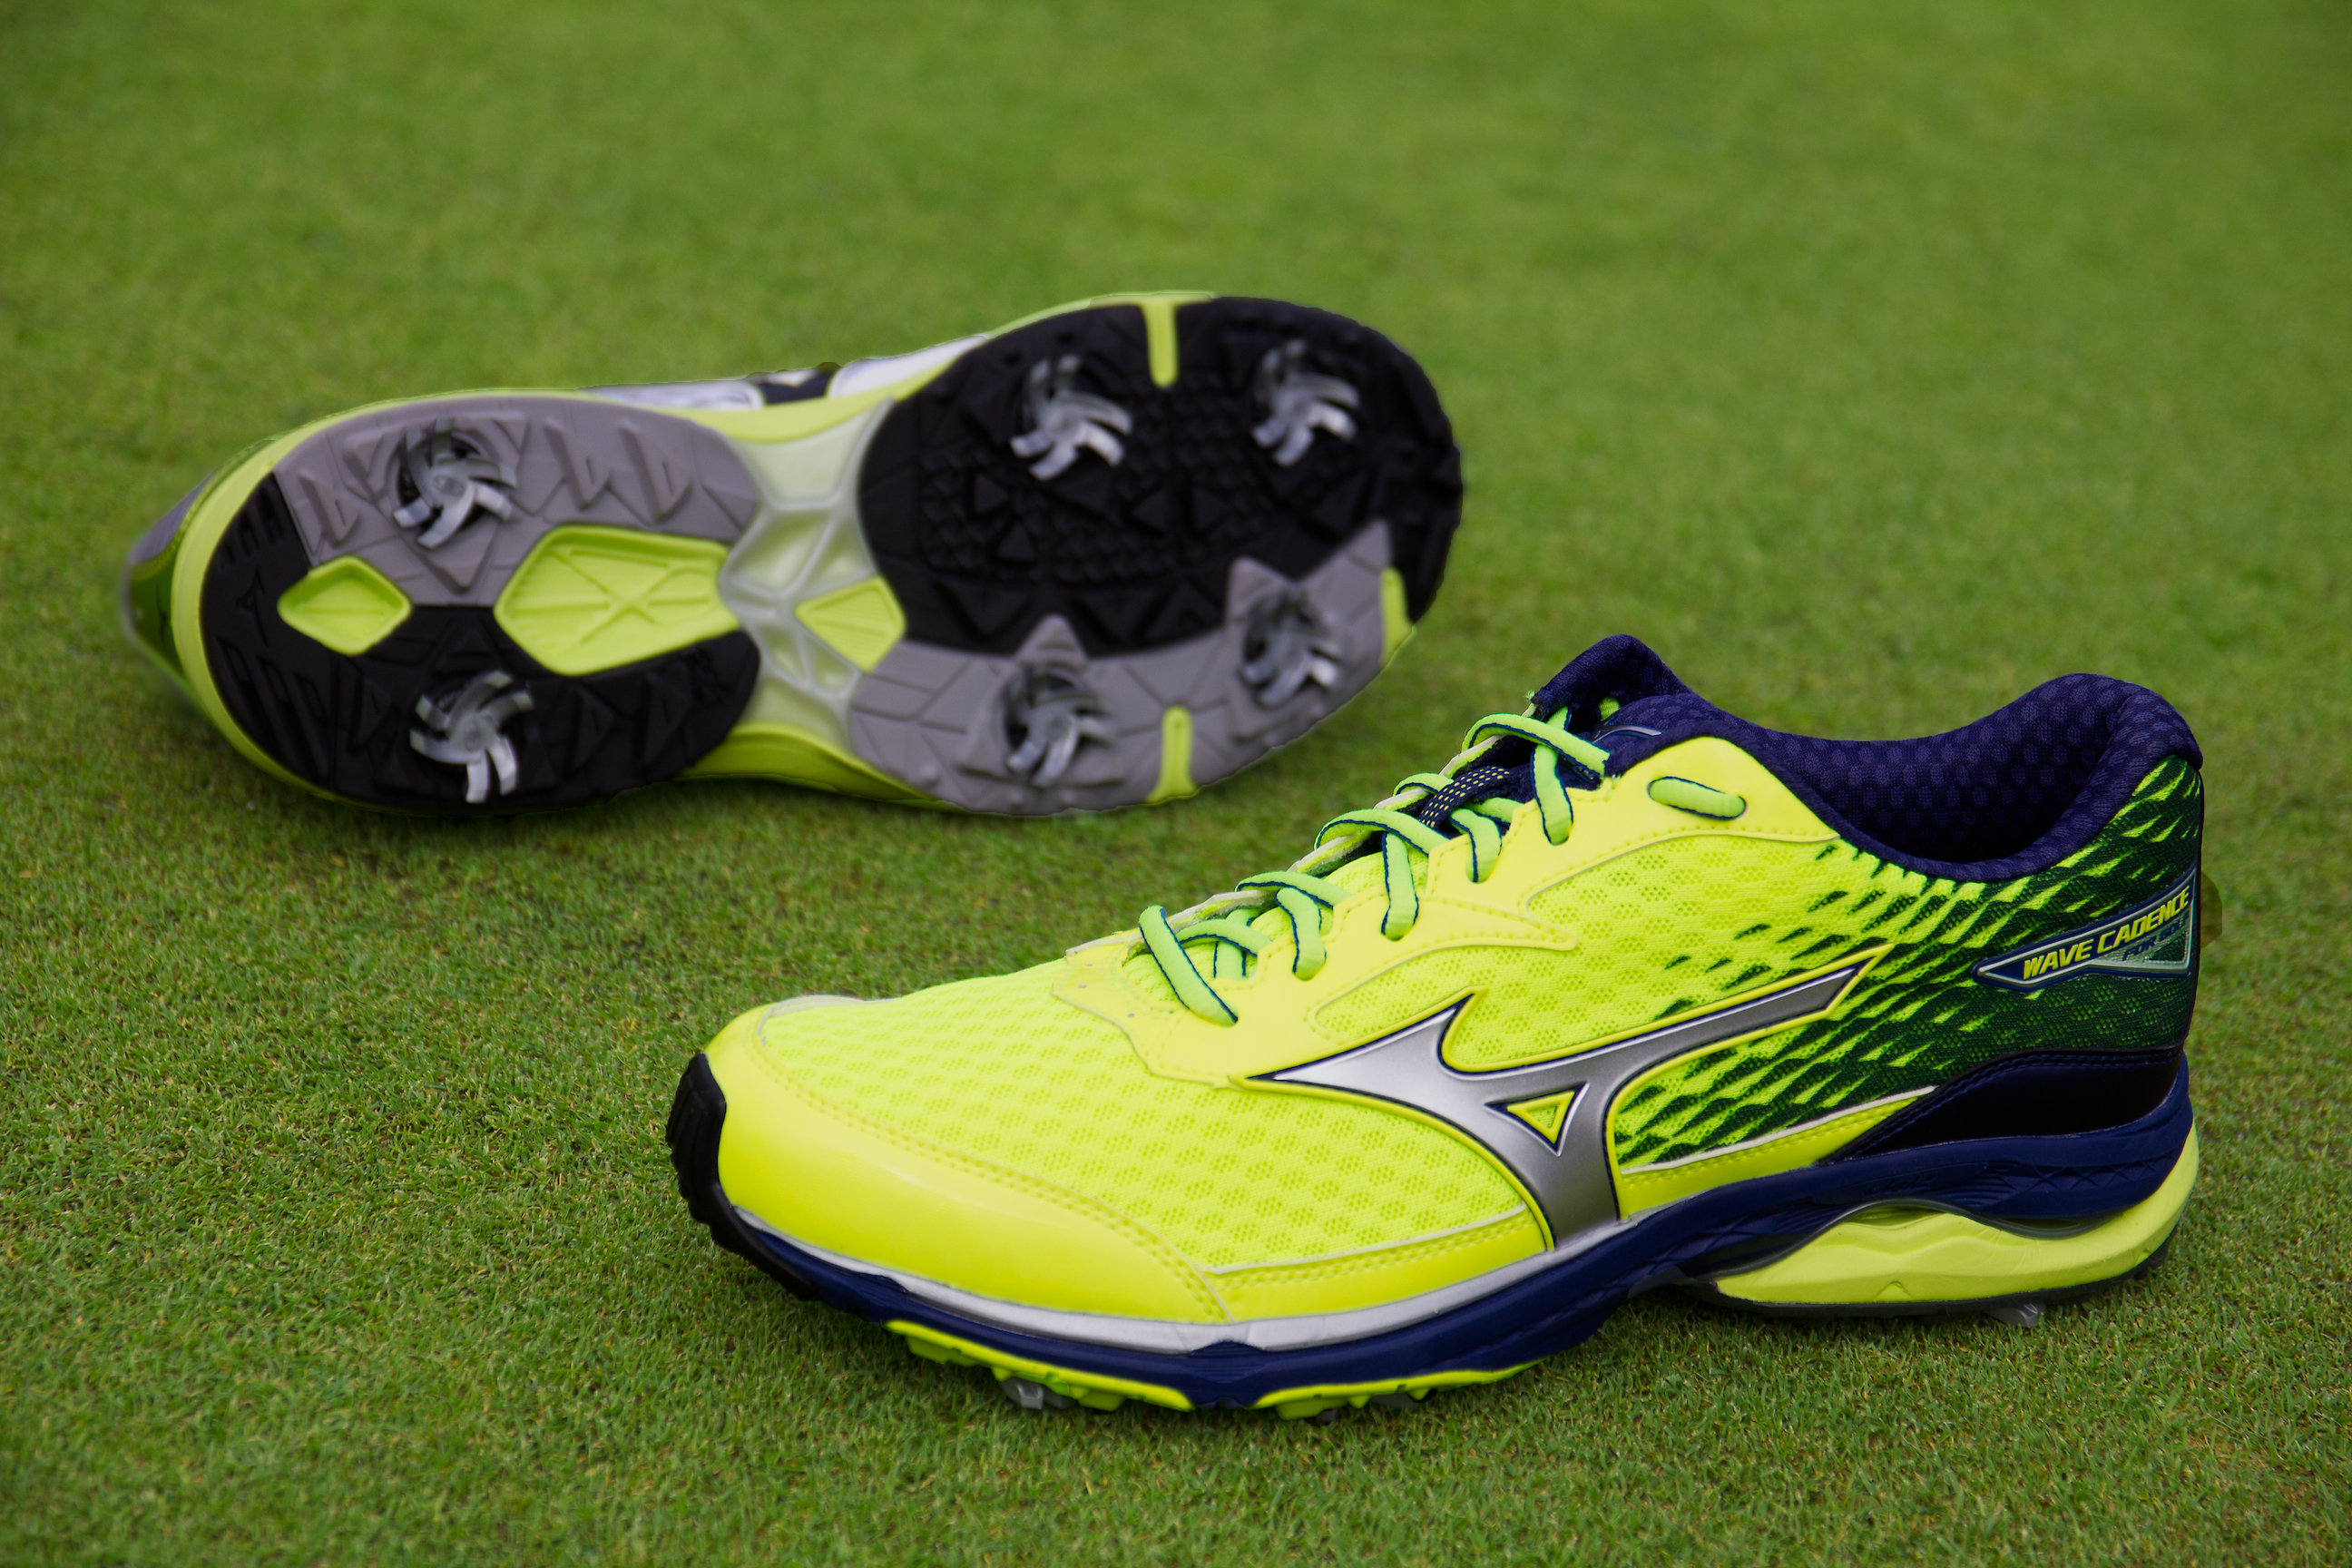 Mizuno add two new golf shoes to 2018 line-up